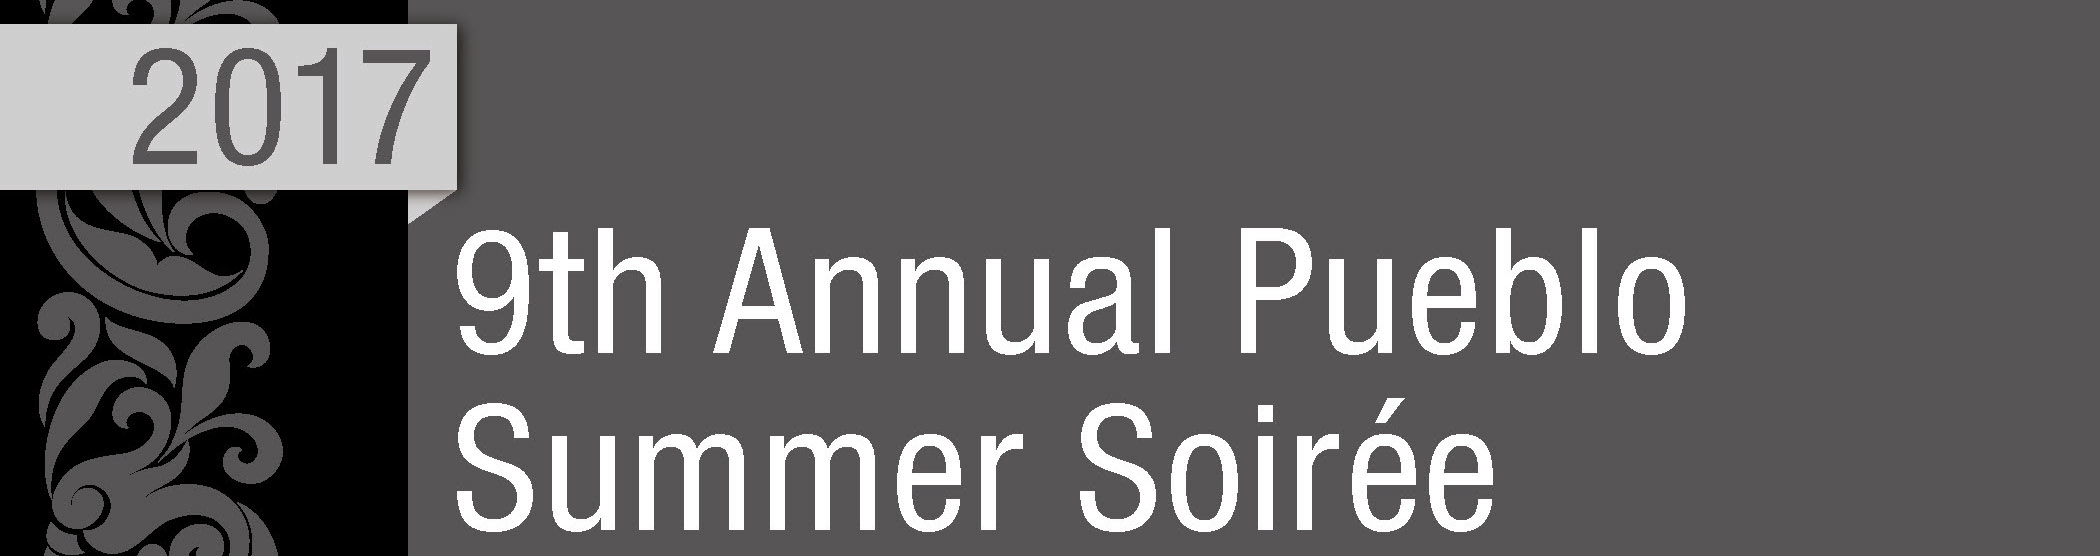 9th Annual Pueblo Summer Soiree